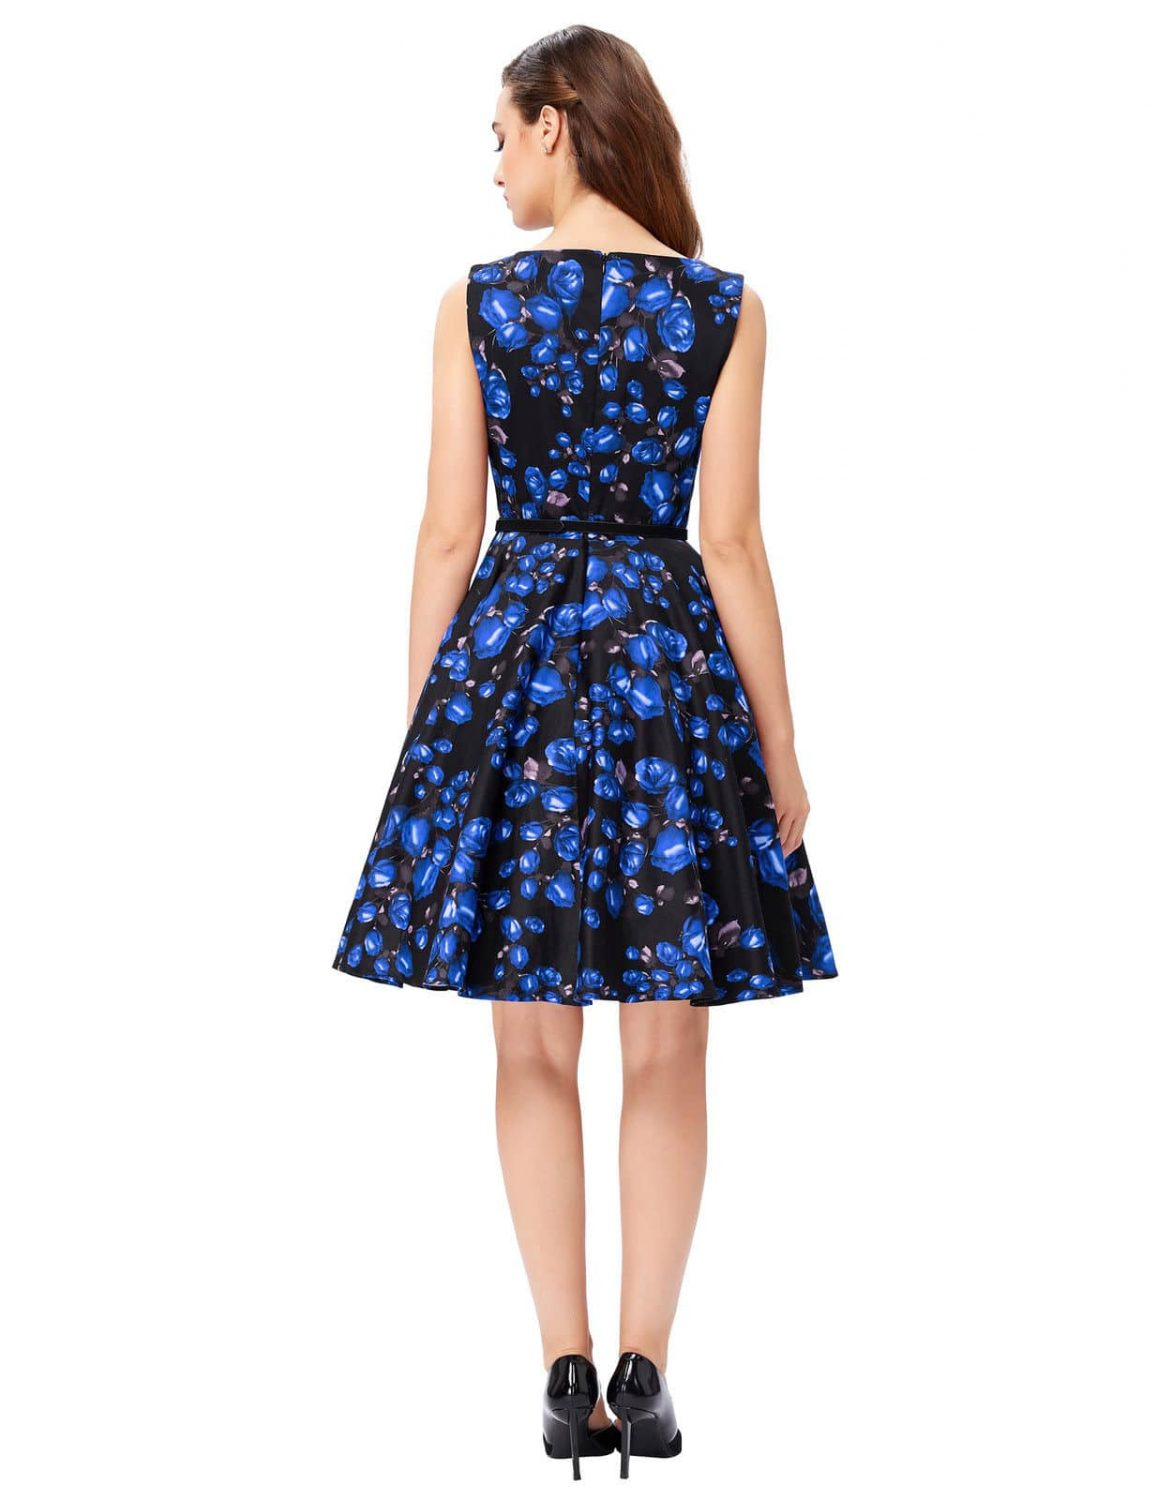 Blue Rose Swing Dress 1950sglam